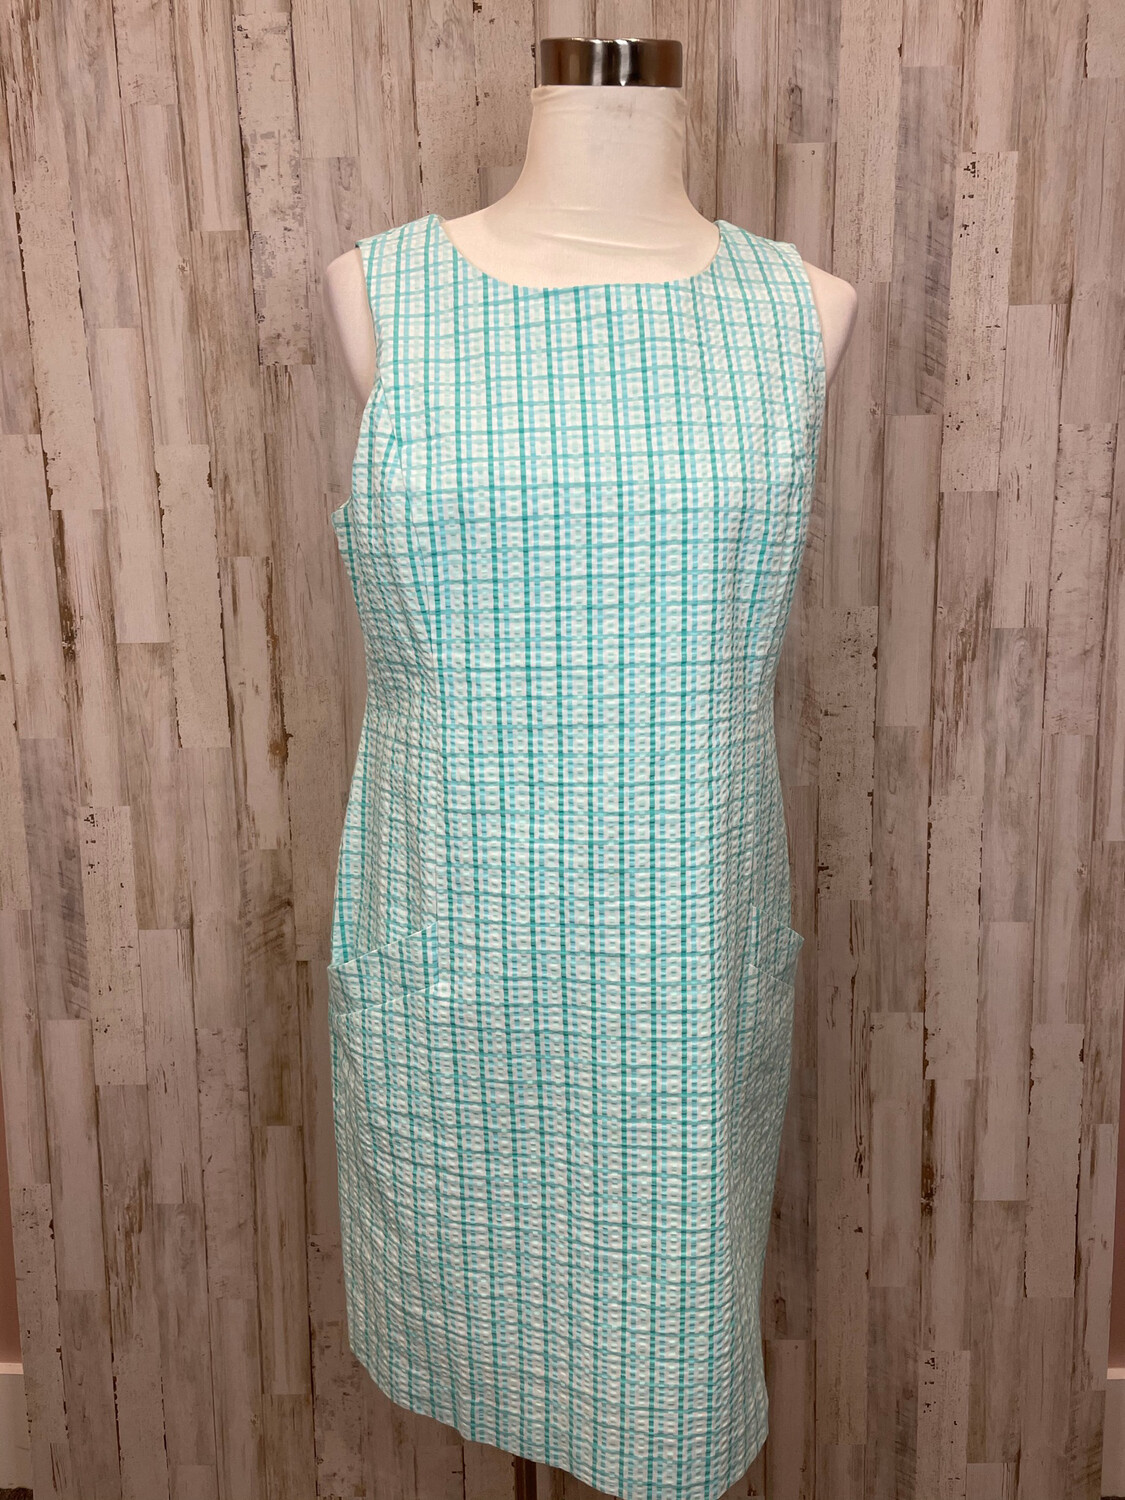 Southern Tide White & Green Seersucker Plaid Tank Dress - Size 10